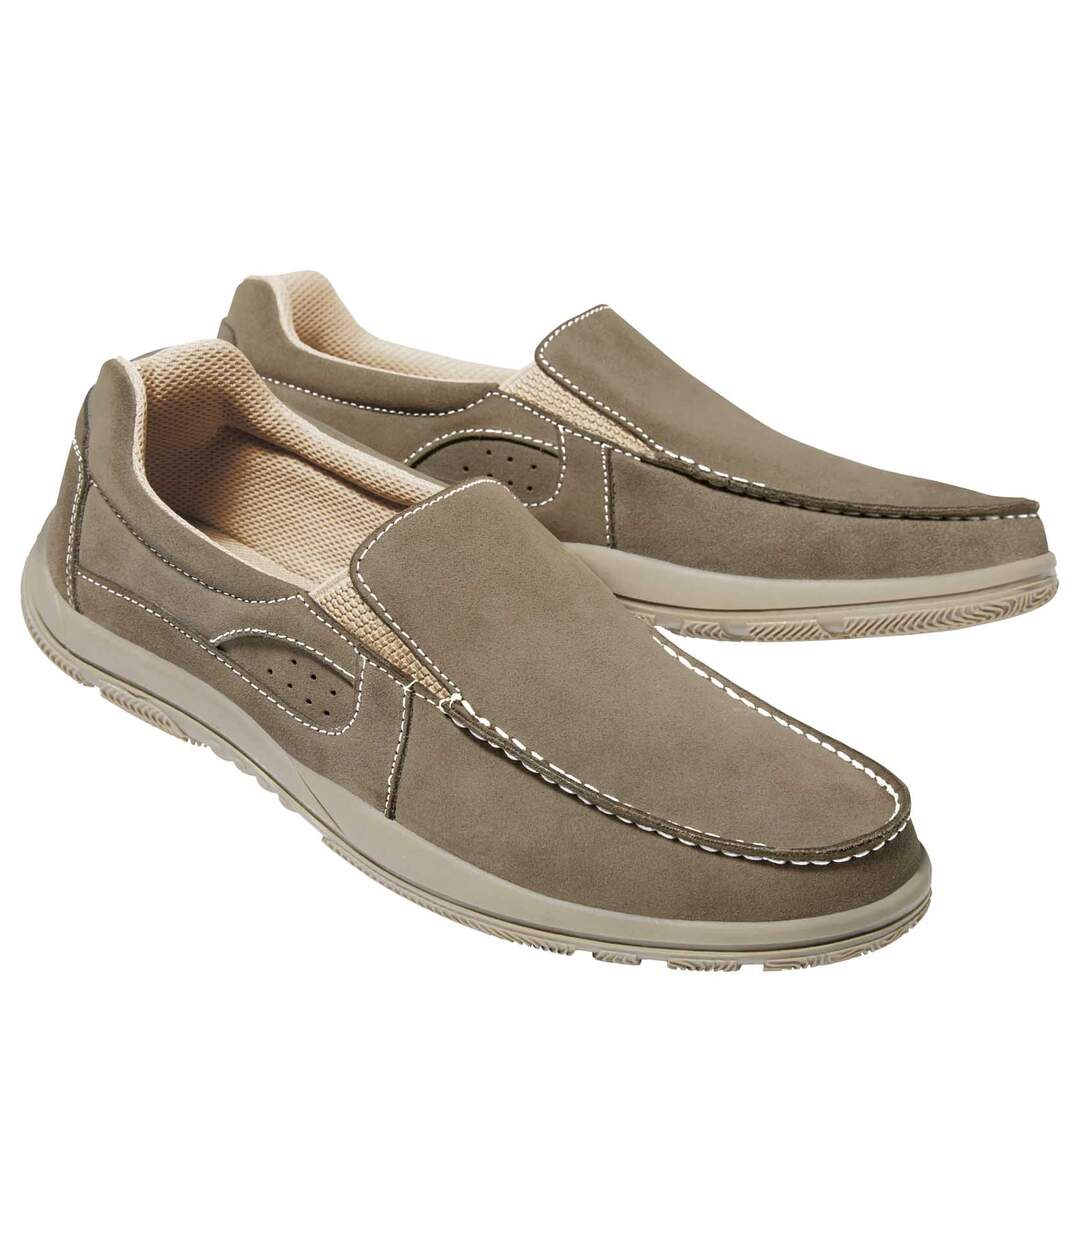 Men's Taupe Relax Moccasins